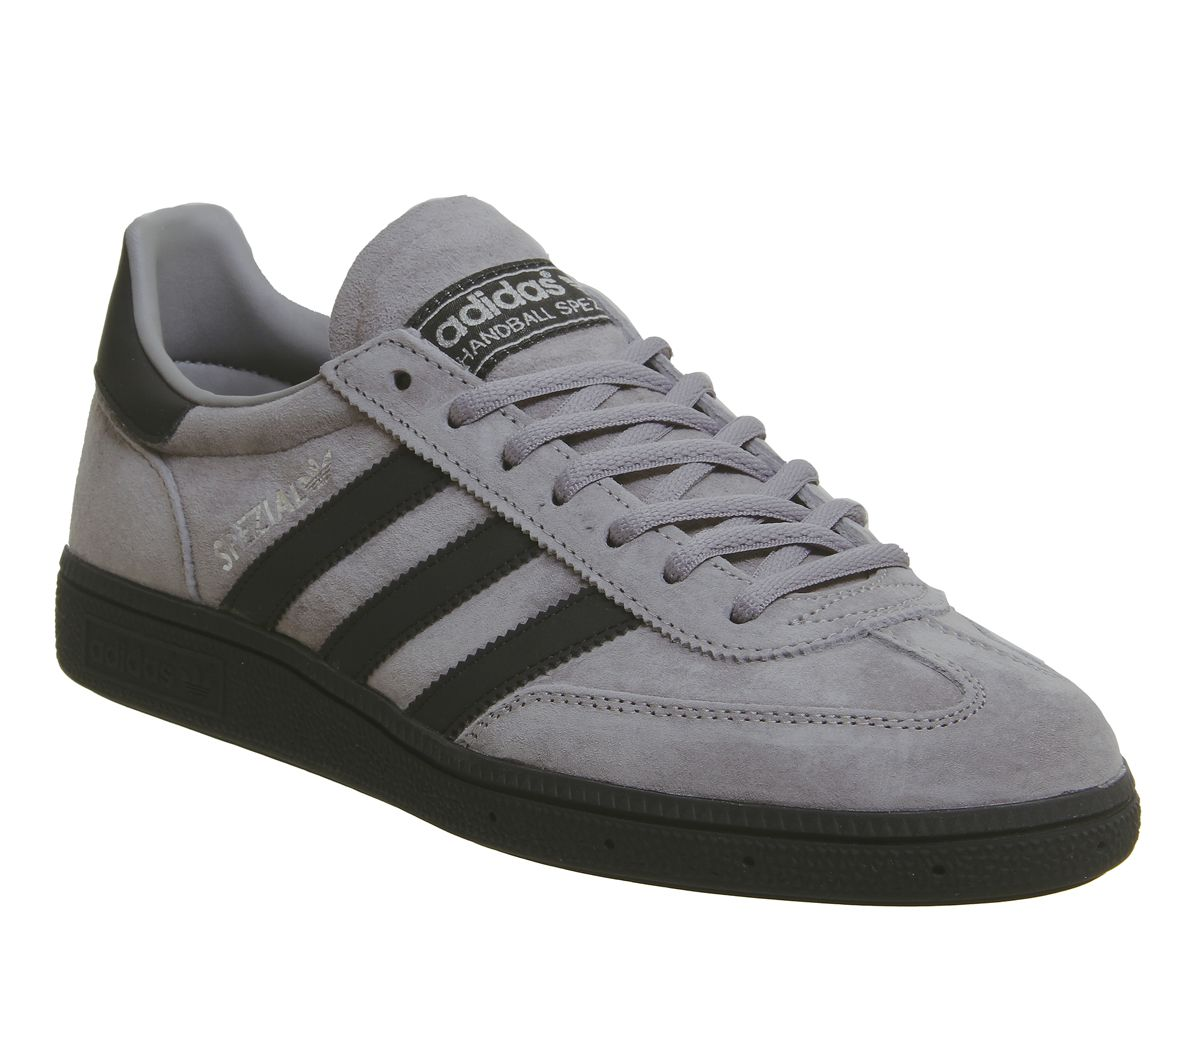 3559dcd7f21c adidas Handball Spezial Trainers Solid Grey Core Black Silver ...